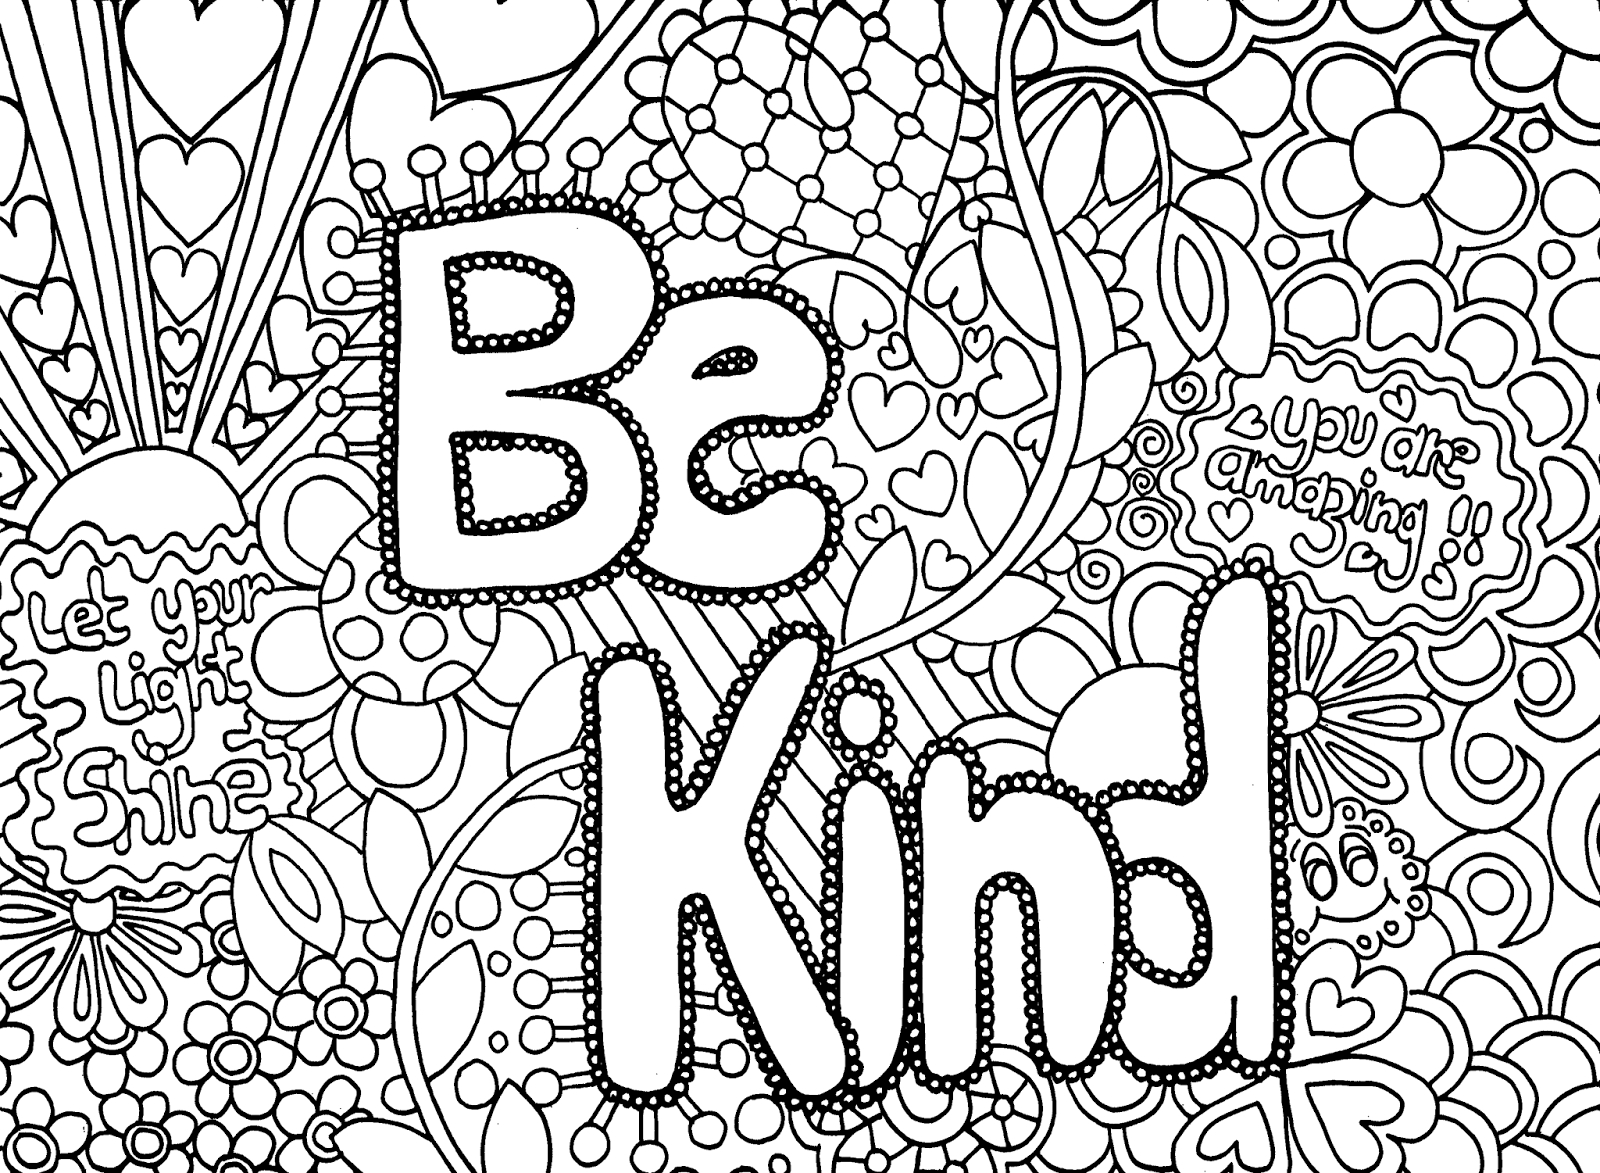 printable community coloring pages complex coloring pages for kids at getcoloringscom free community printable pages coloring